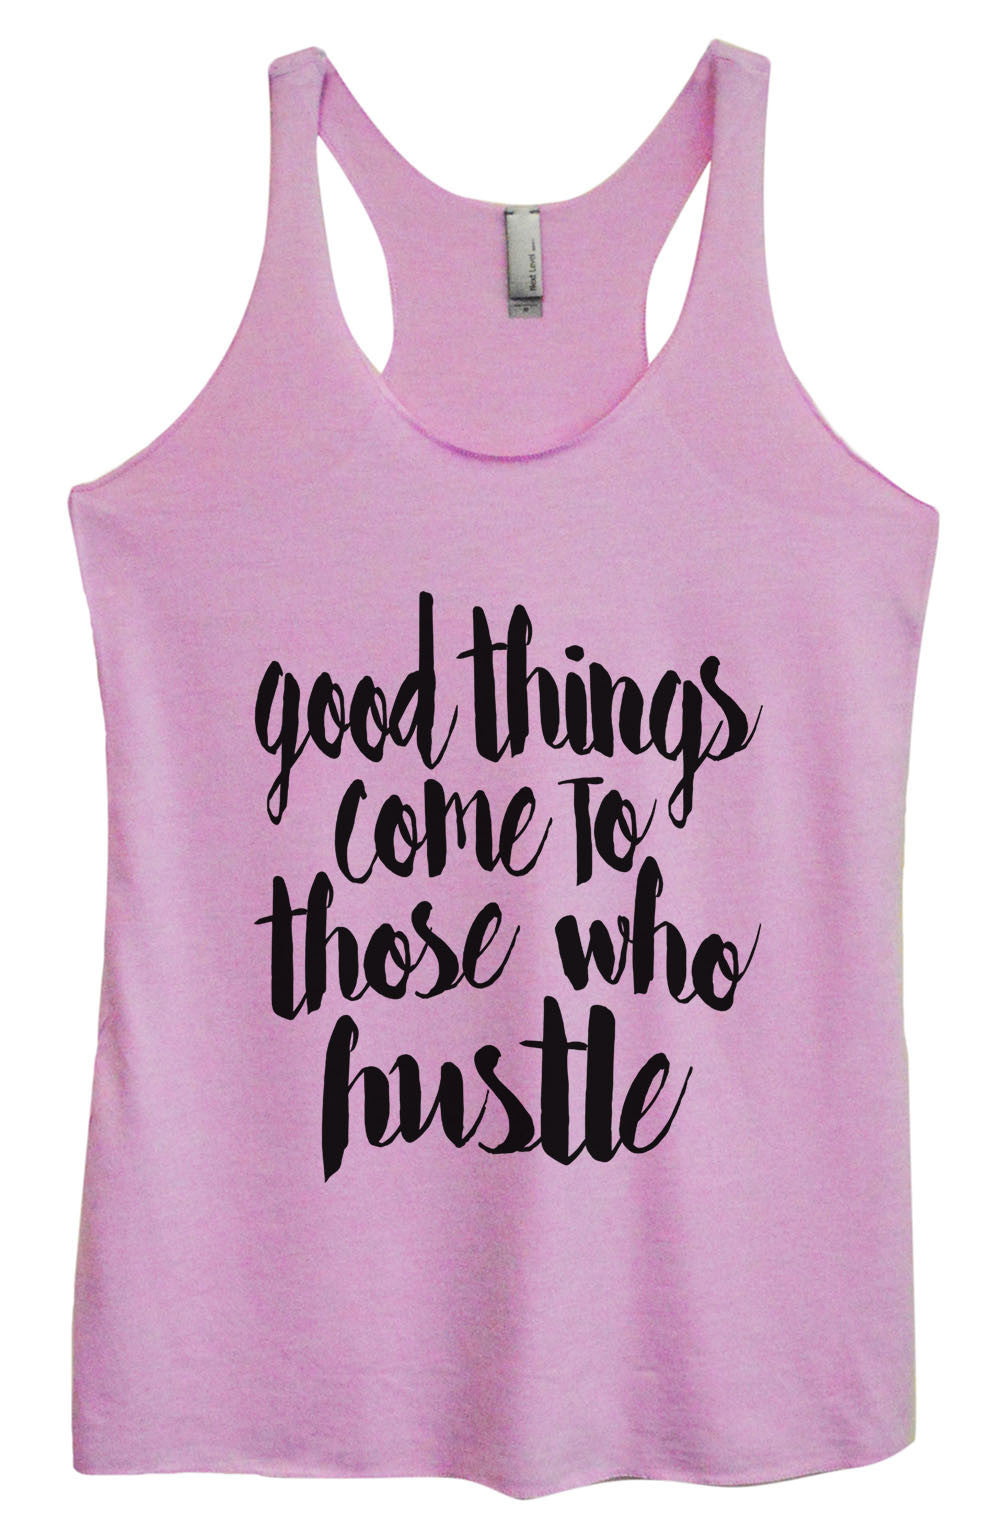 Womens Fashion Triblend Tank Top - Good Things Come To Those Who Hustle - Tri-1478 - Funny Shirts Tank Tops Burnouts and Triblends  - 3